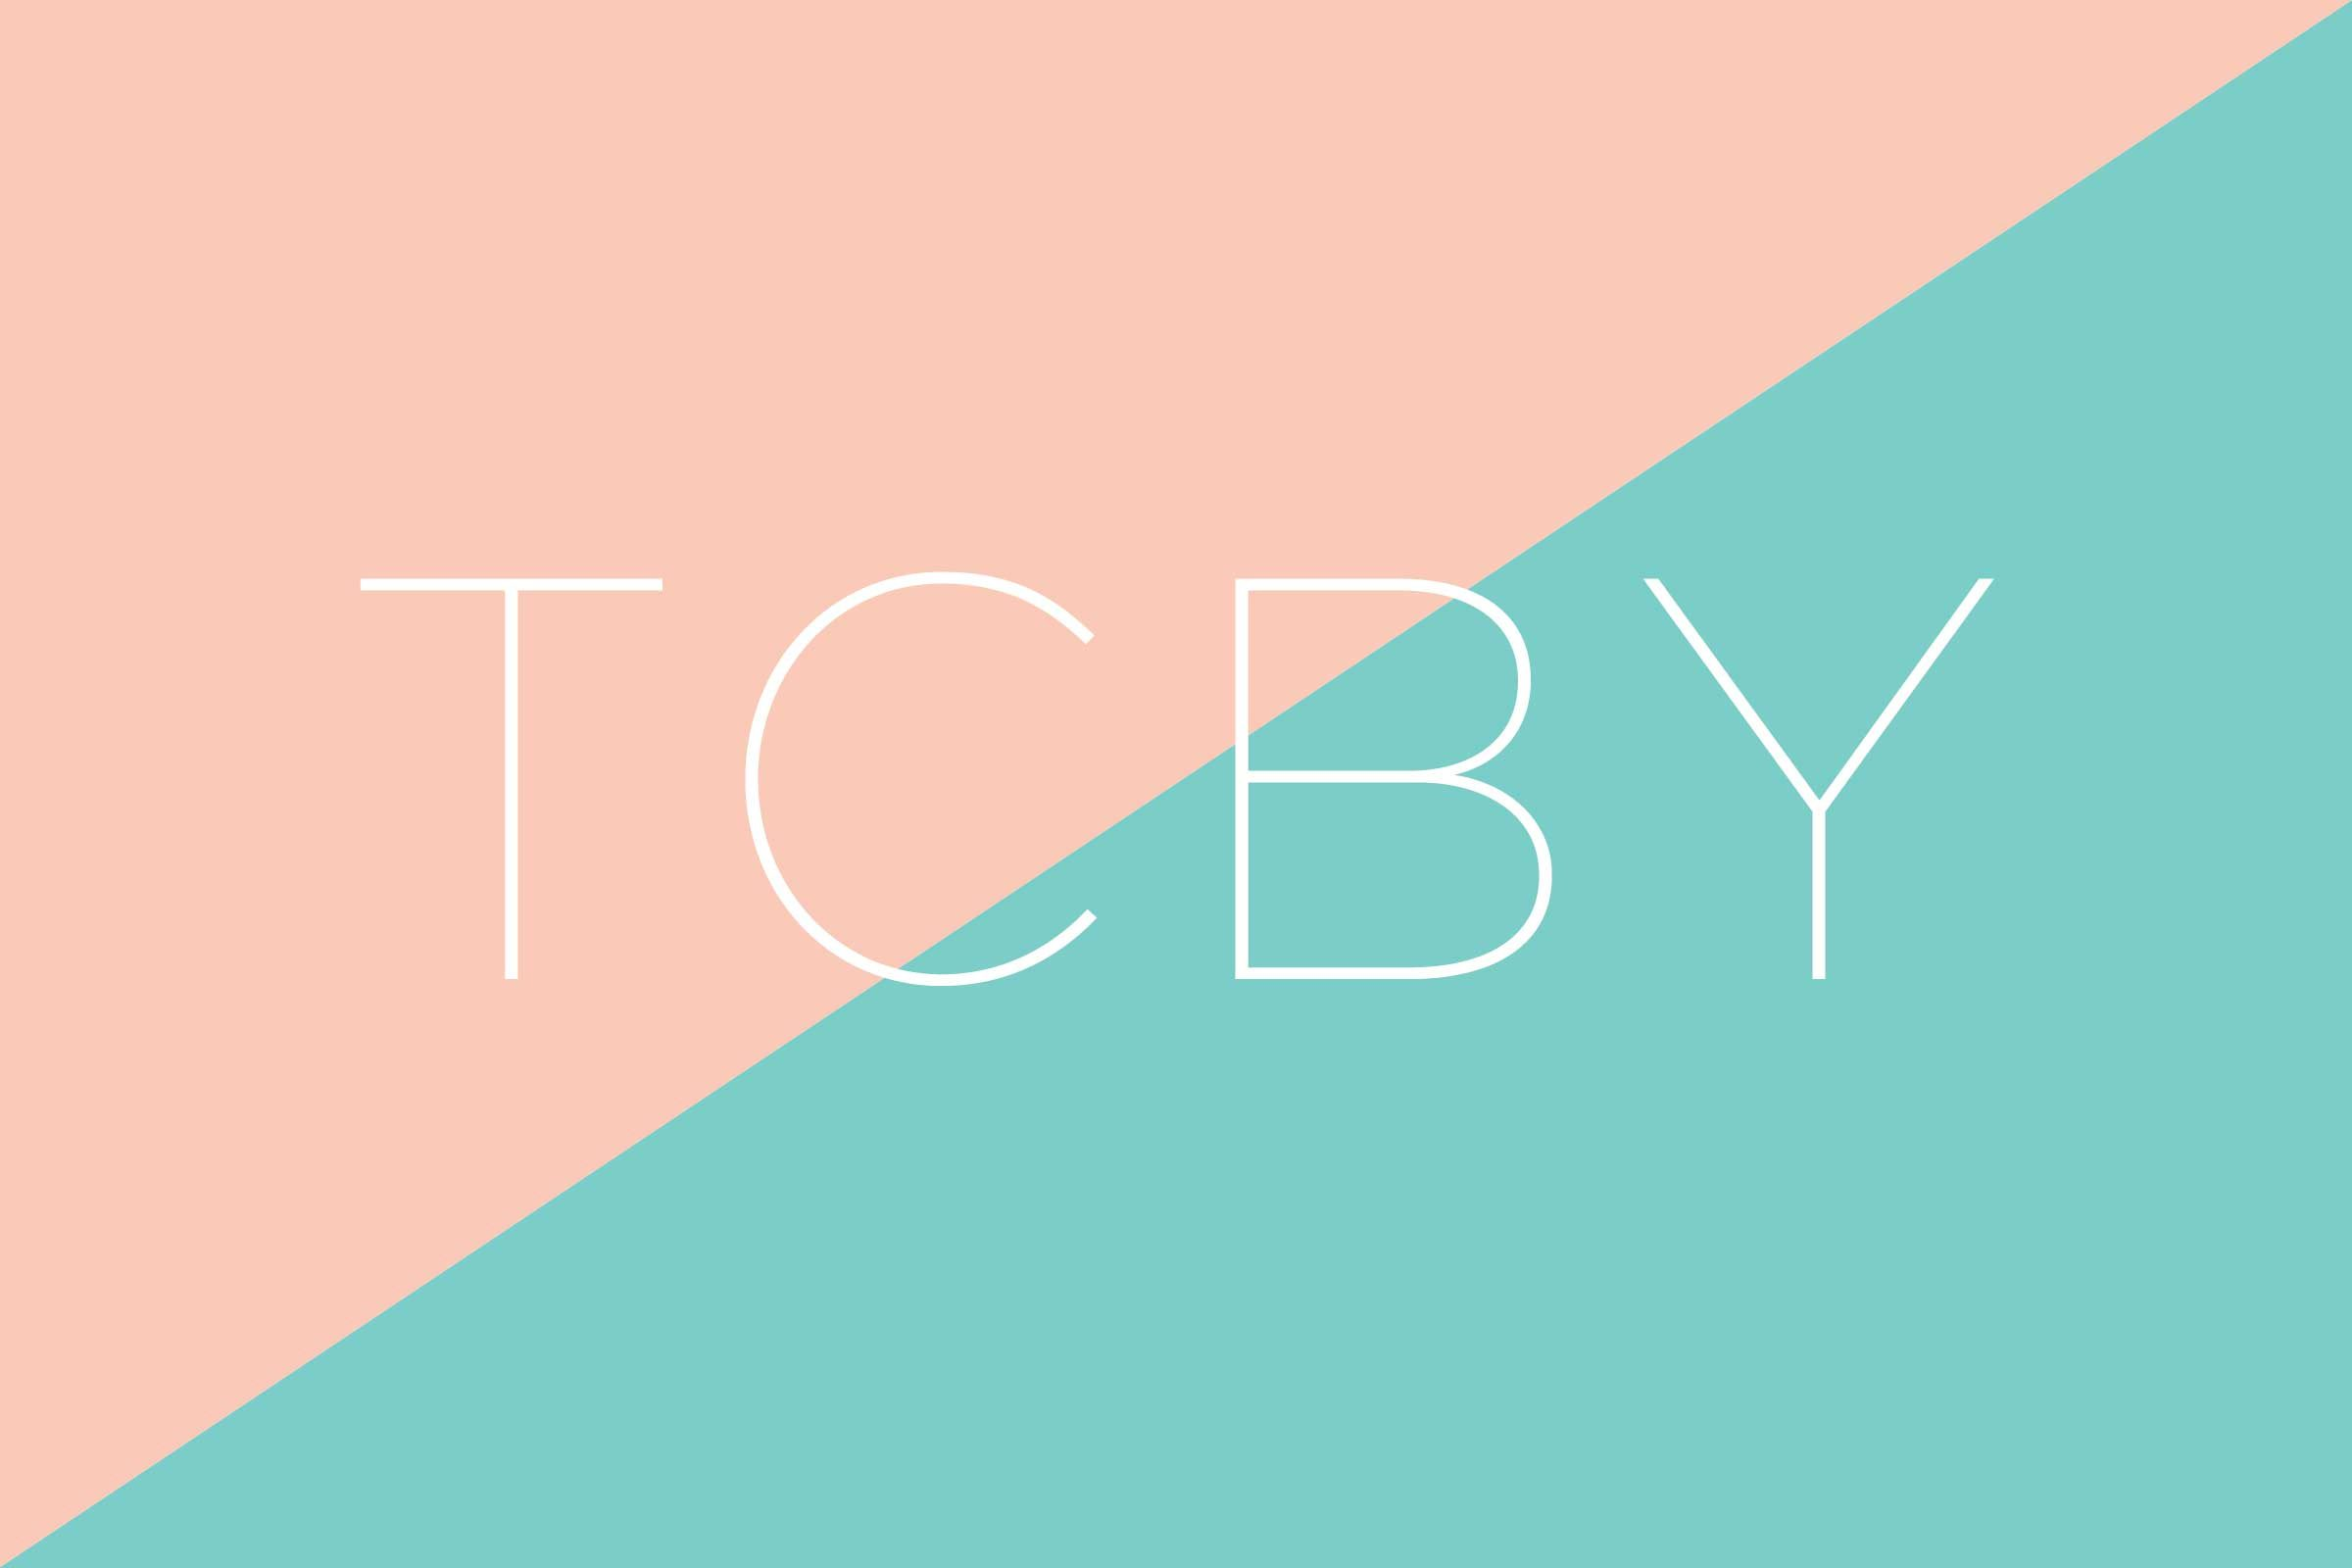 What does TCBY stand for?